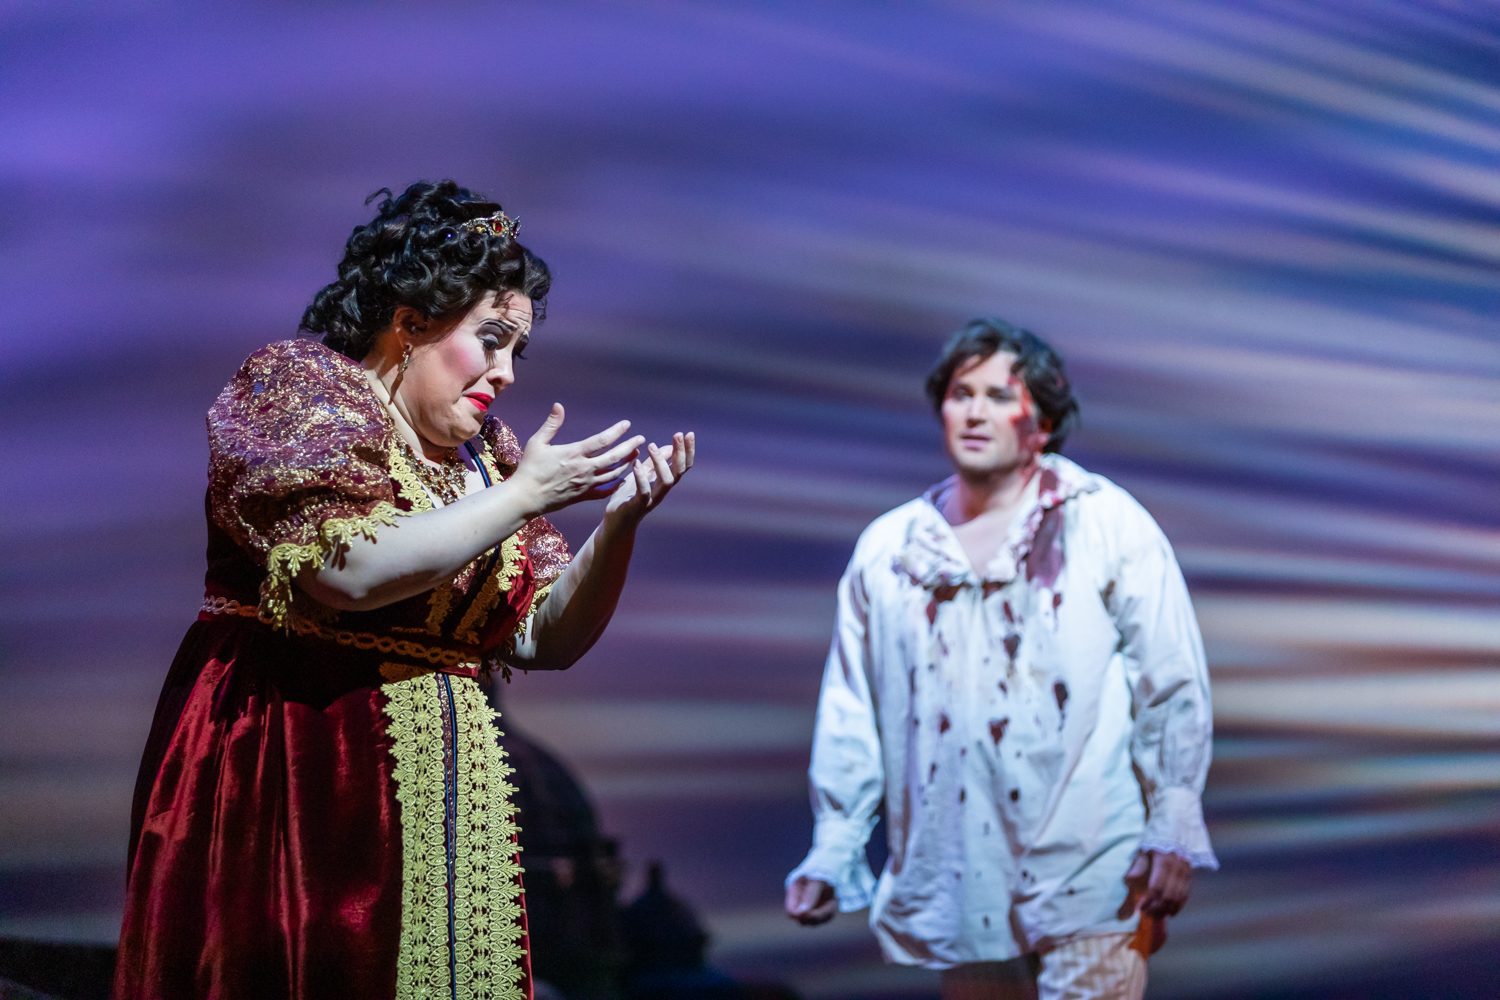 IN REVIEW: soprano ALEXANDRA LOBIANCO as Tosca (left) and tenor SCOTT QUINN as Cavaradossi (right) in North Carolina Opera's April 2019 production of Giacomo Puccini's TOSCA [Photograph by Eric Waters, © by North Carolina Opera]